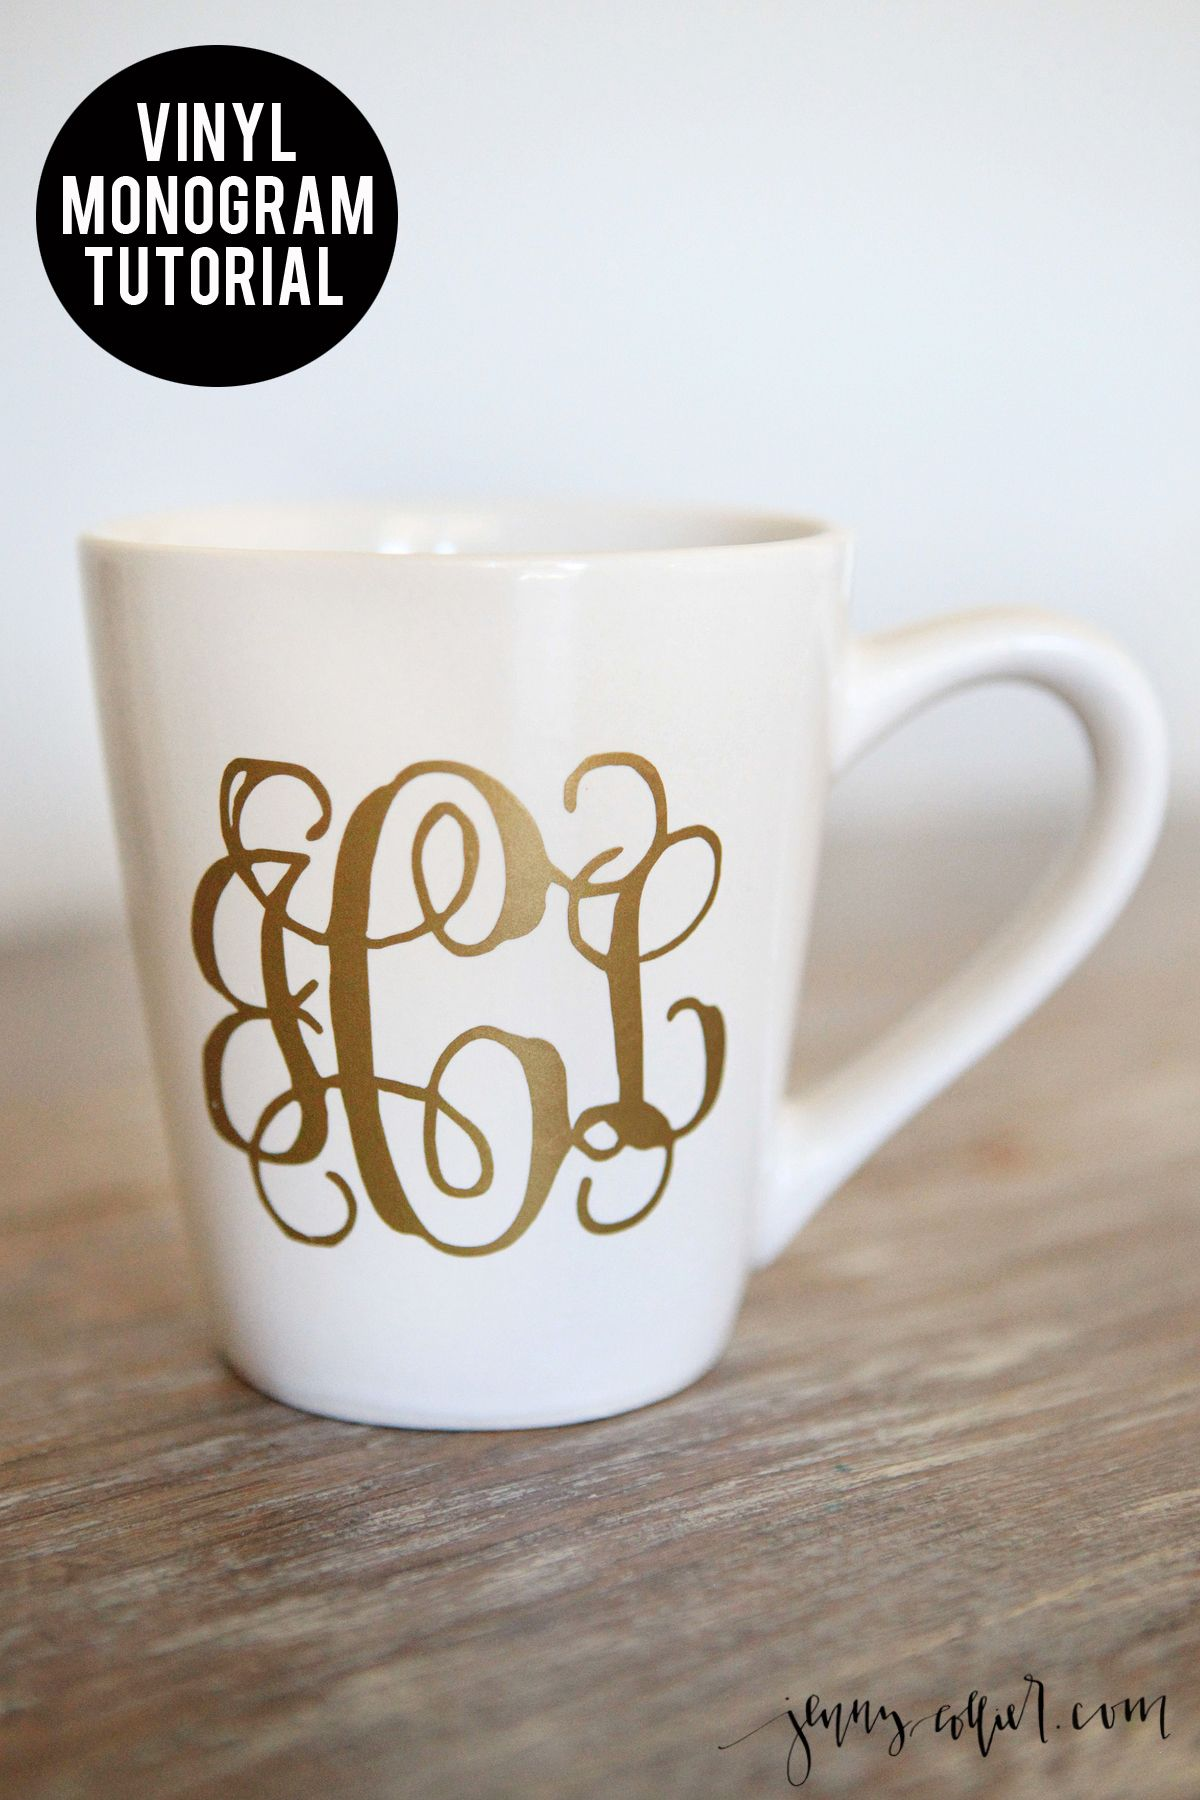 After getting a Cricut and discovering all of the vinyl projects these DIY Vinyl Monograms have become my favorite.  Place the vinyl on coffee mugs, wine glasses, you name it.  A perfect DIY gift idea!